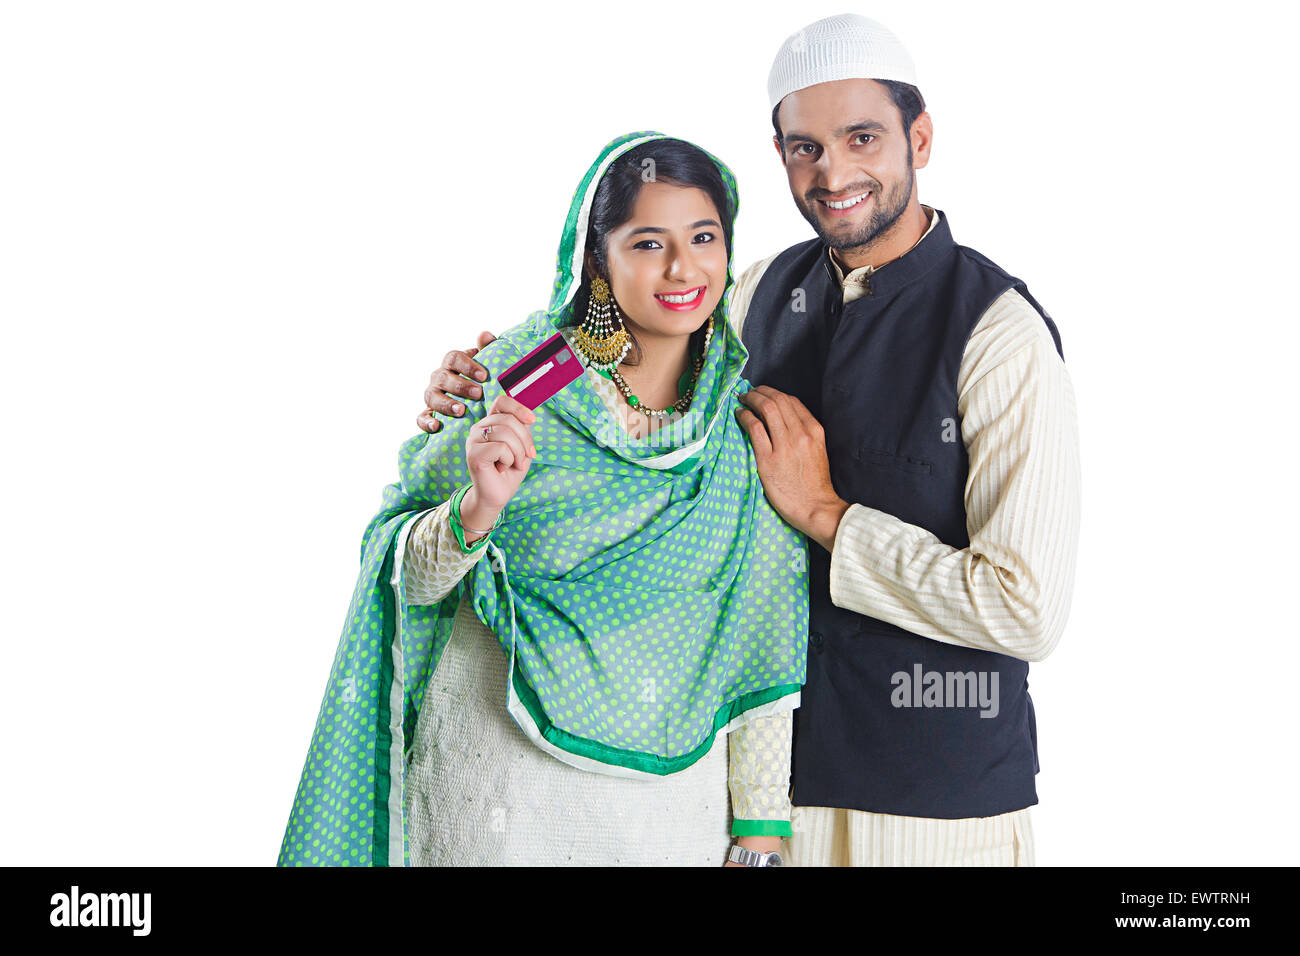 2 indian Muslim Married Couple Credit Card and showing money - Stock Image